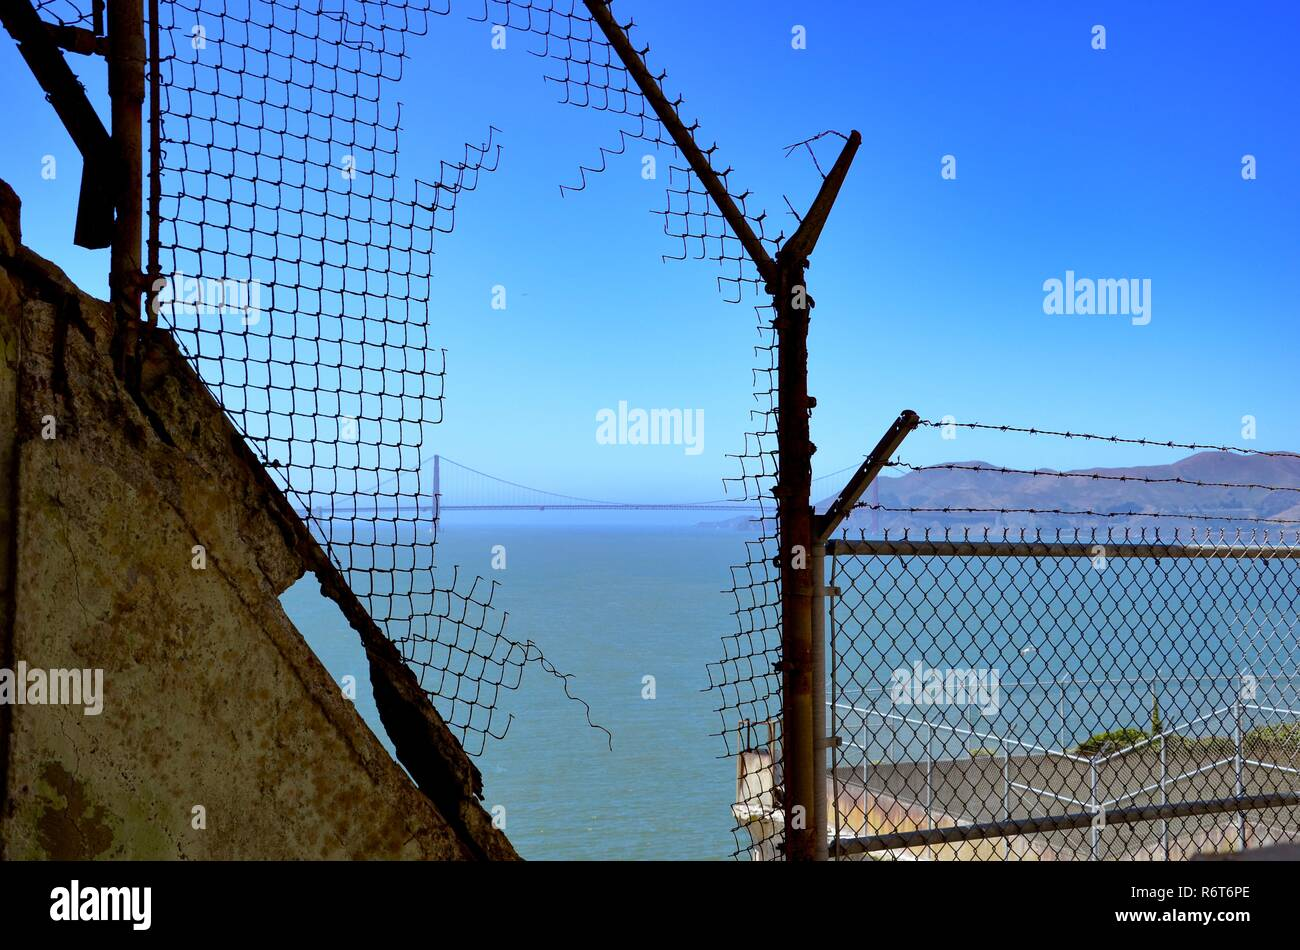 View through a torn fence on Alcatraz Island in San Francisco Bay towards Golden Gate Bridge, view outside jail - Stock Image